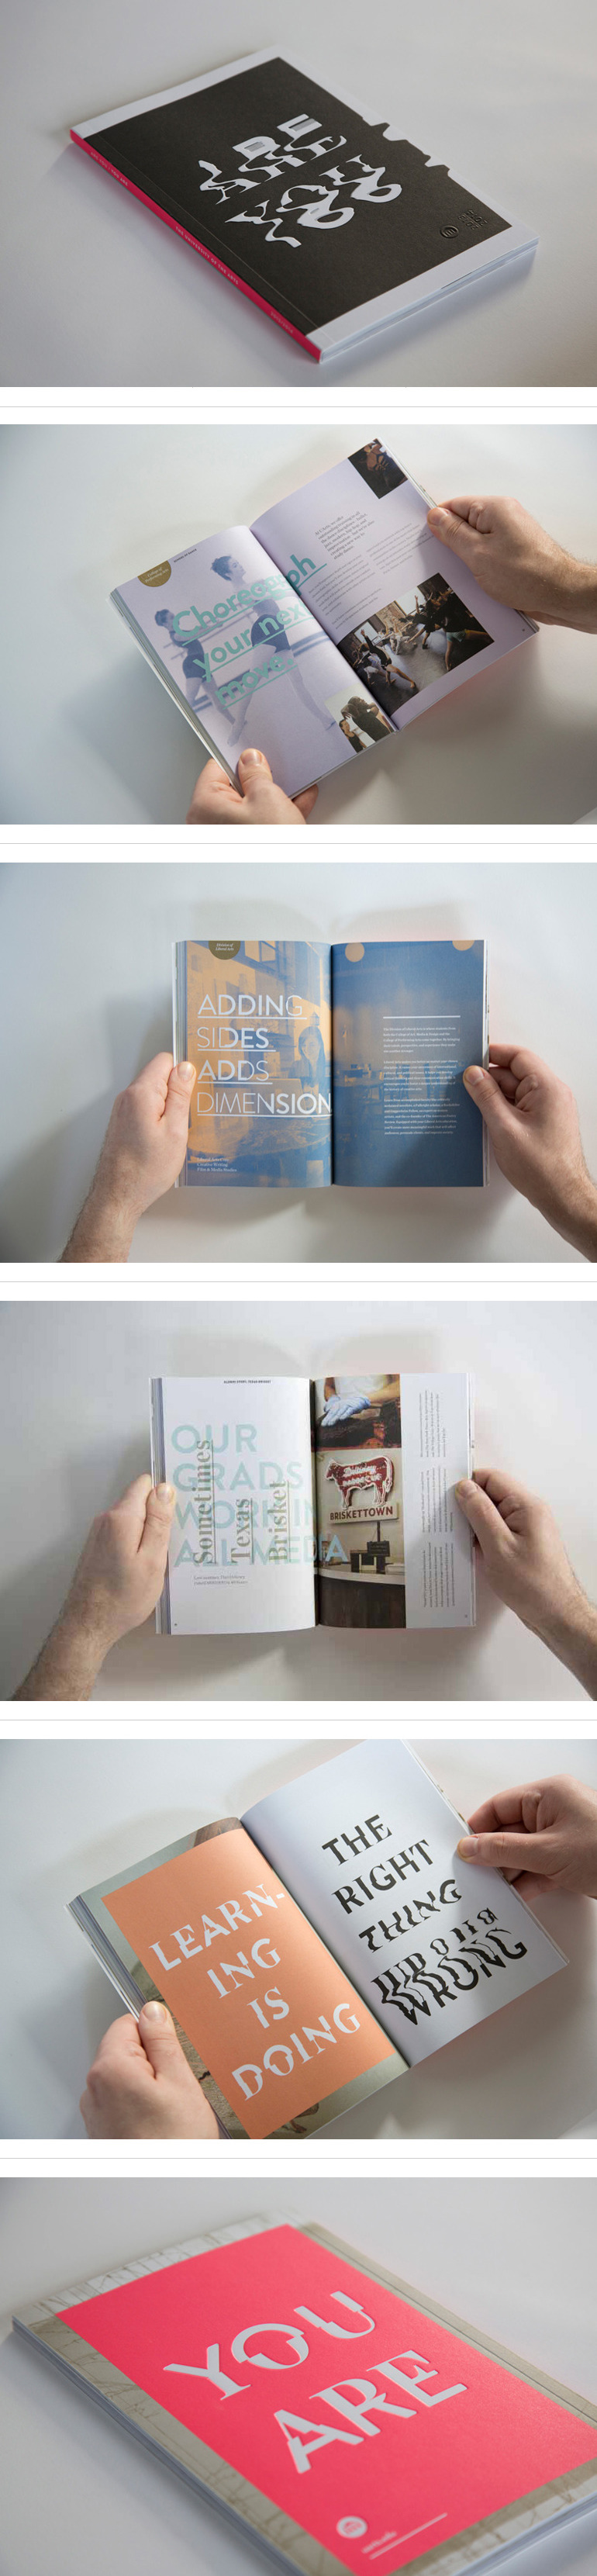 University of the Arts Viewbook